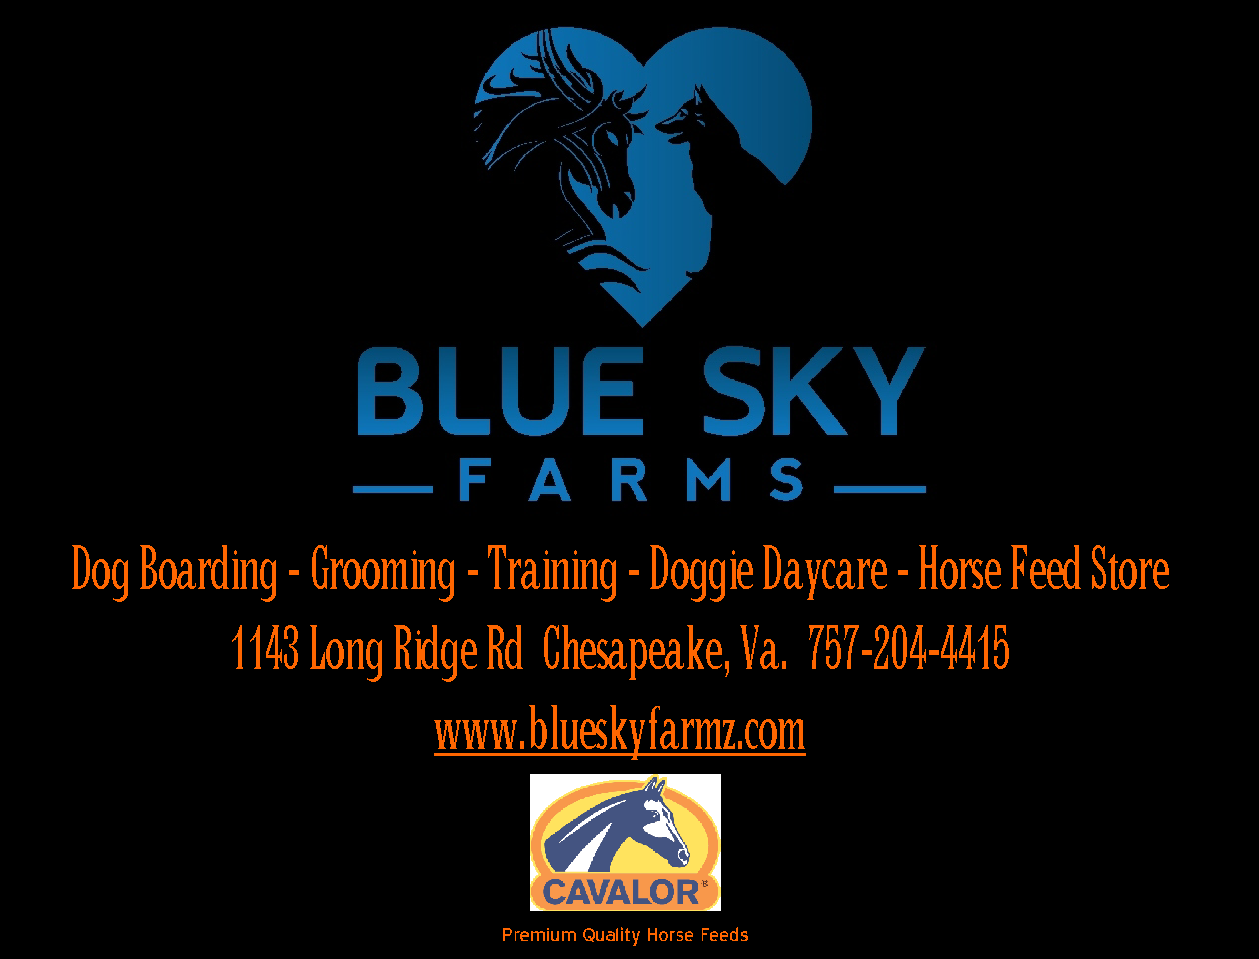 Blue Sky Farms